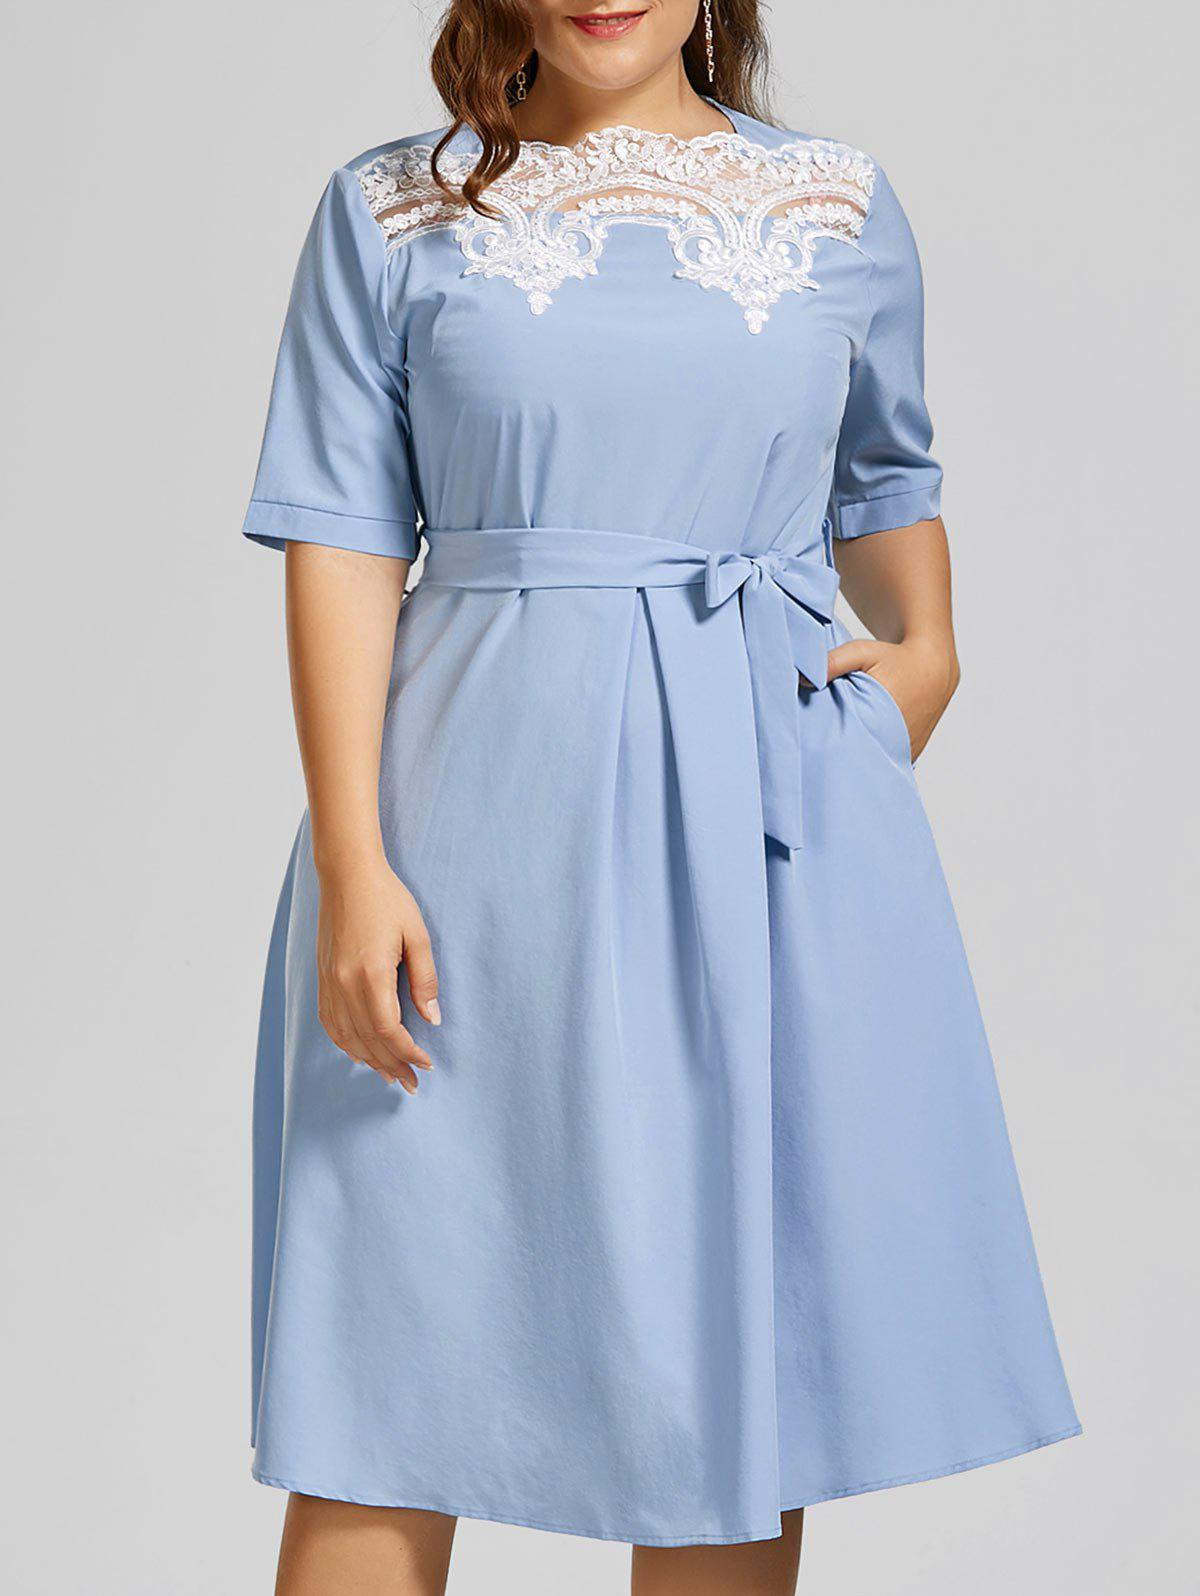 Plus Size Lace Panel Midi Modest Dress - WINDSOR BLUE 3XL